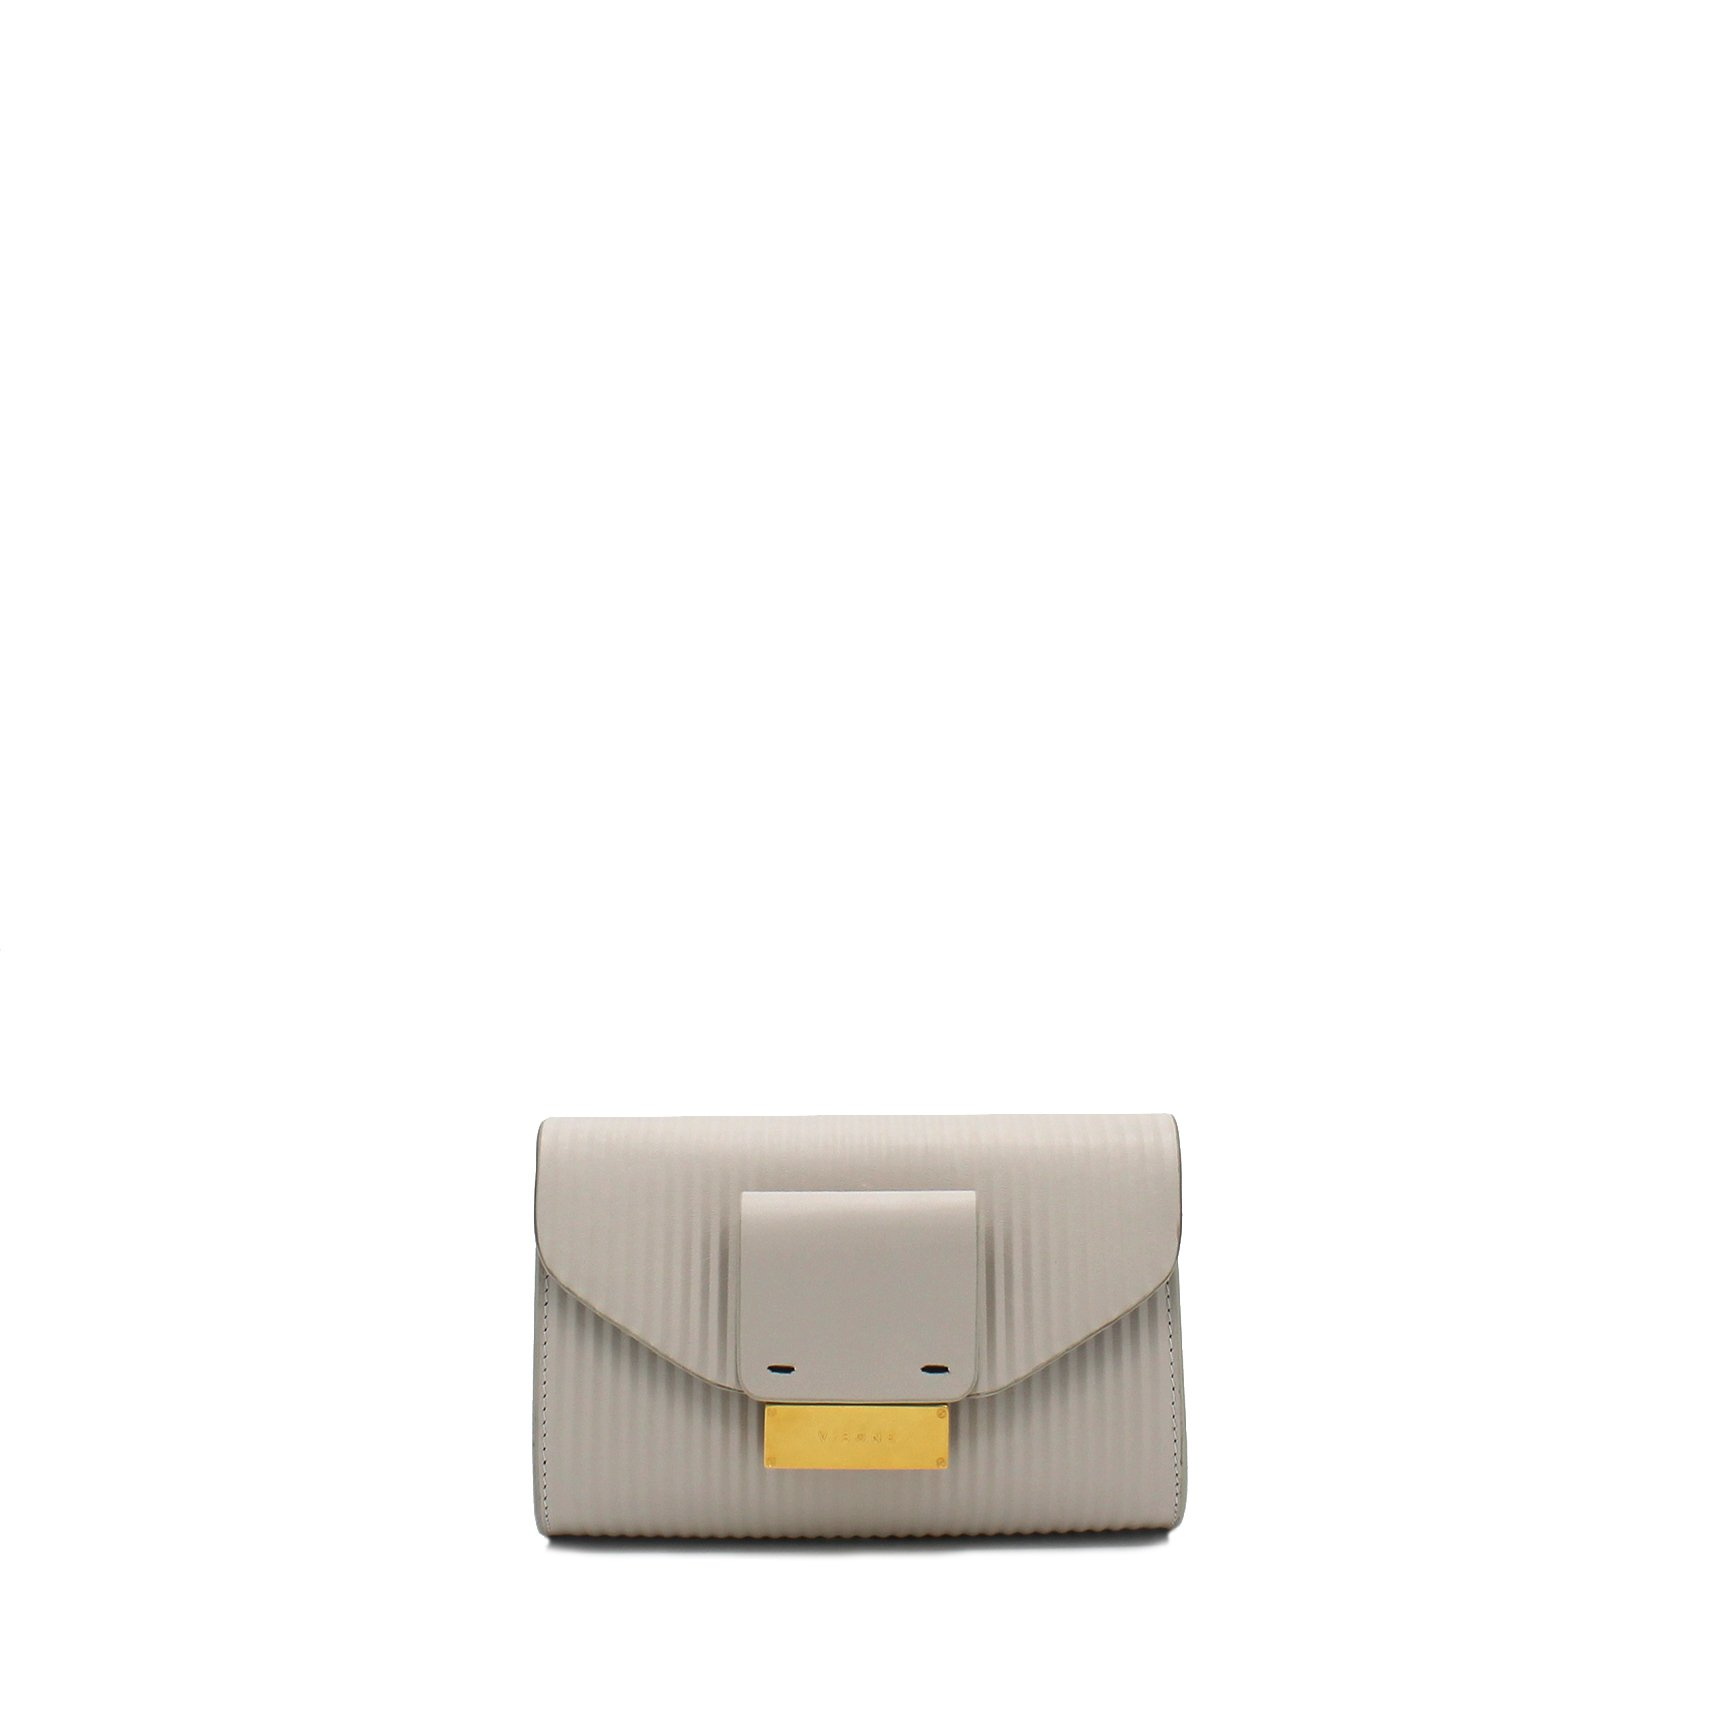 MILA ST SMALL OFF WHITE FRONTE